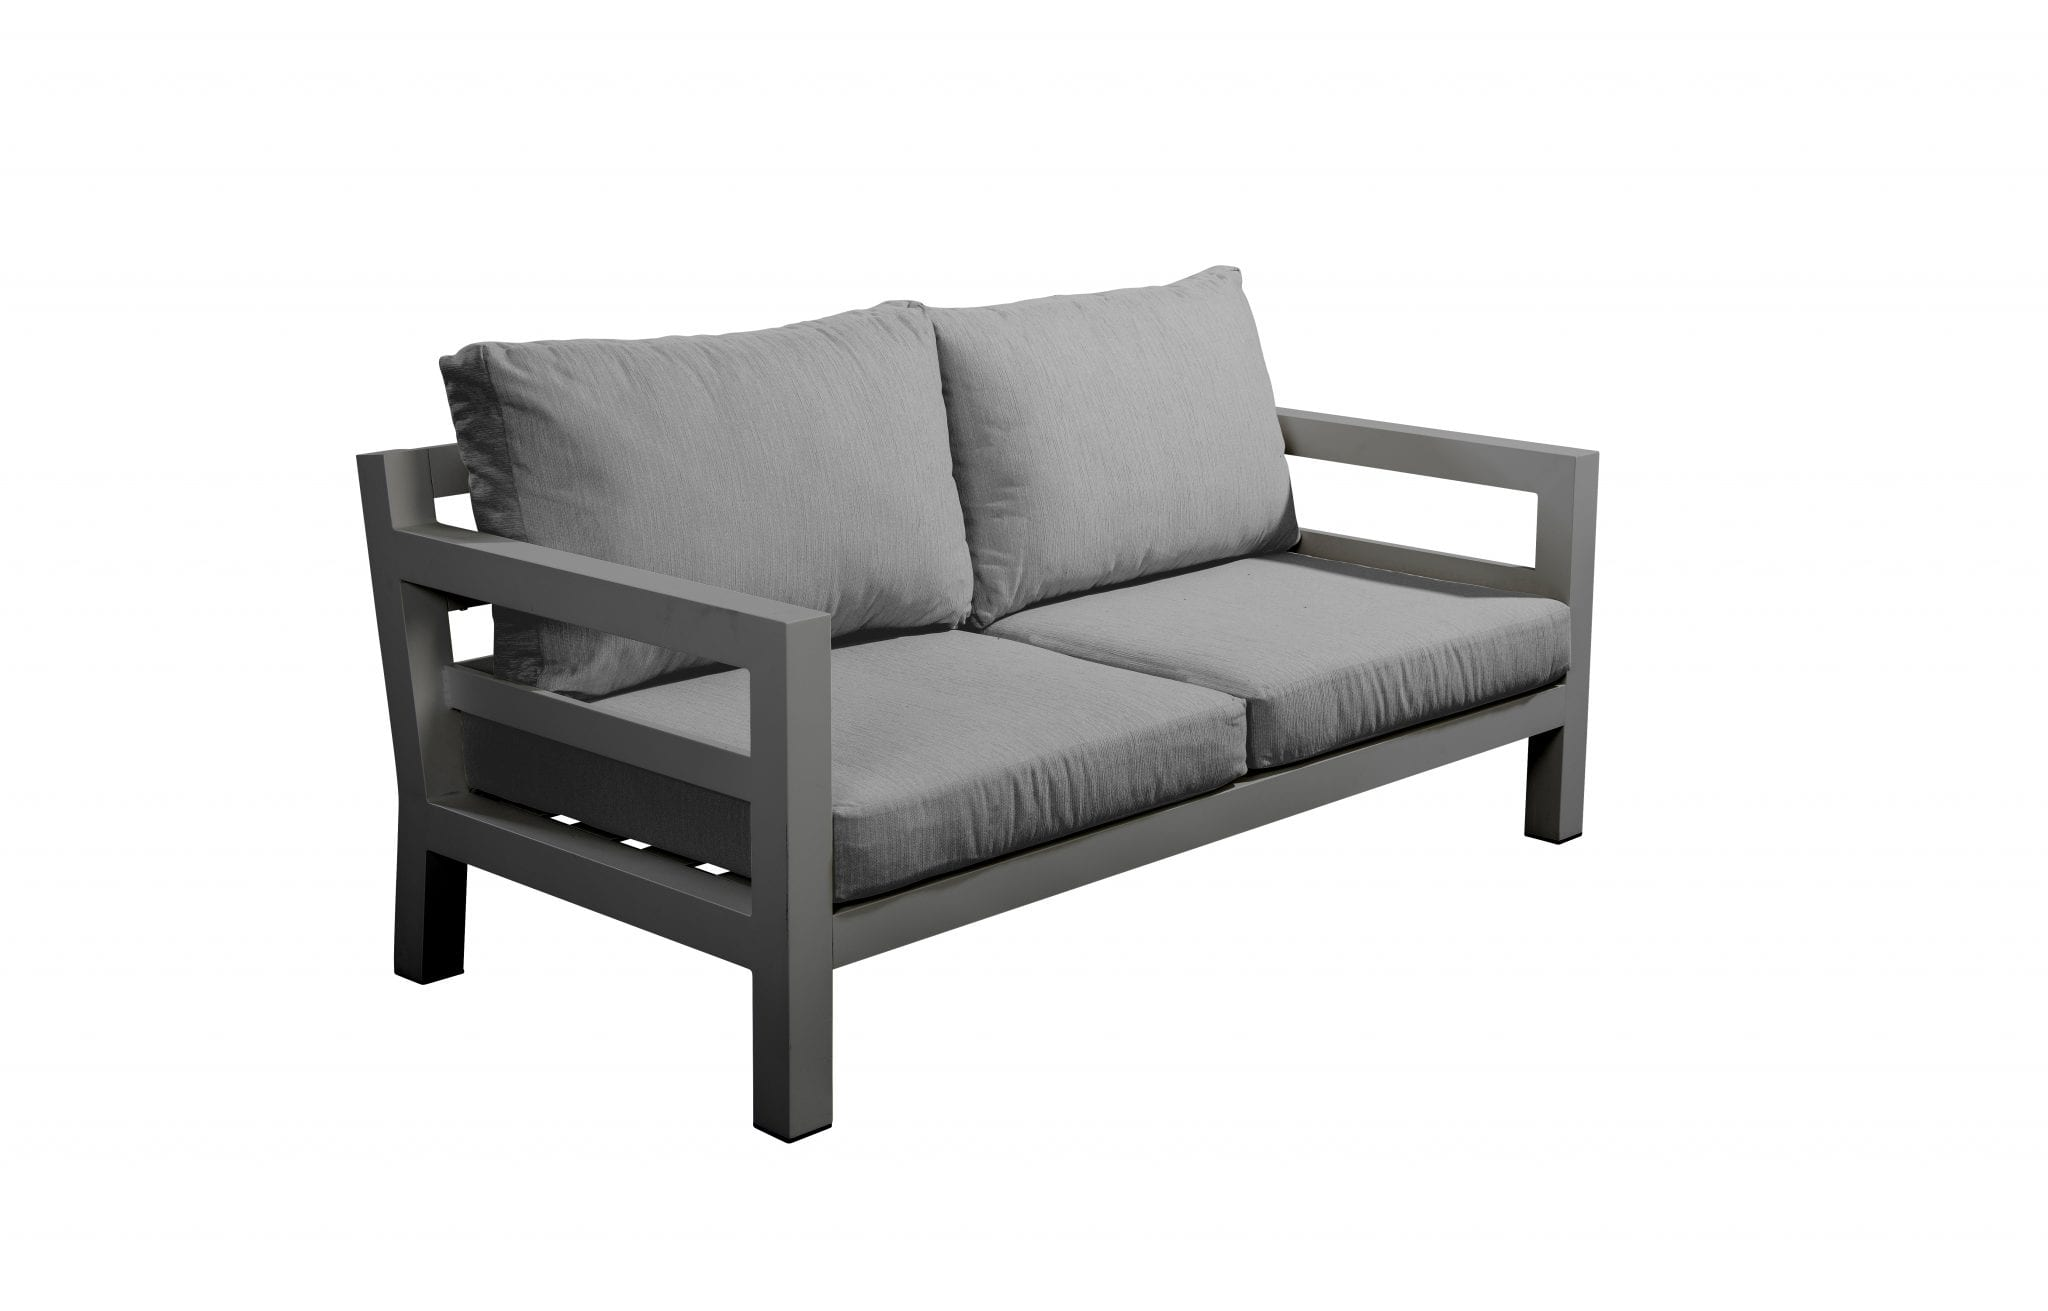 Midori sofa 2 seater - dark grey | Yoi Furniture